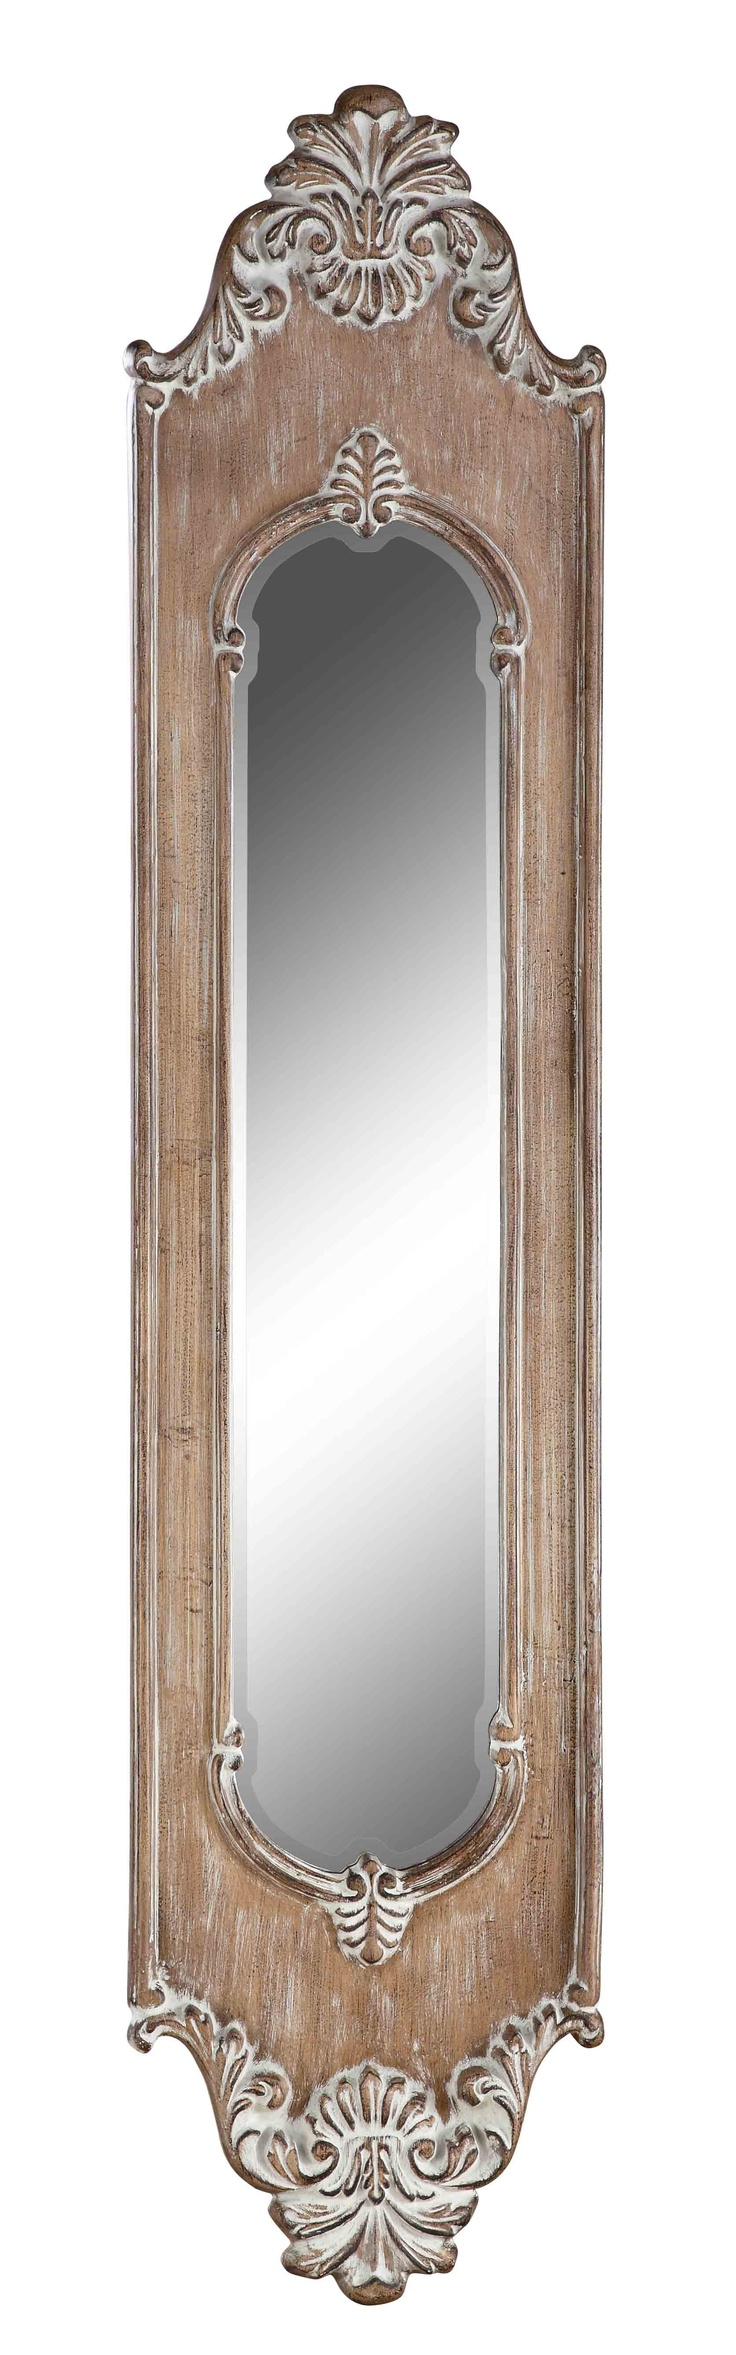 Antique hall mirror long home decor pinterest for Long decorative wall mirrors